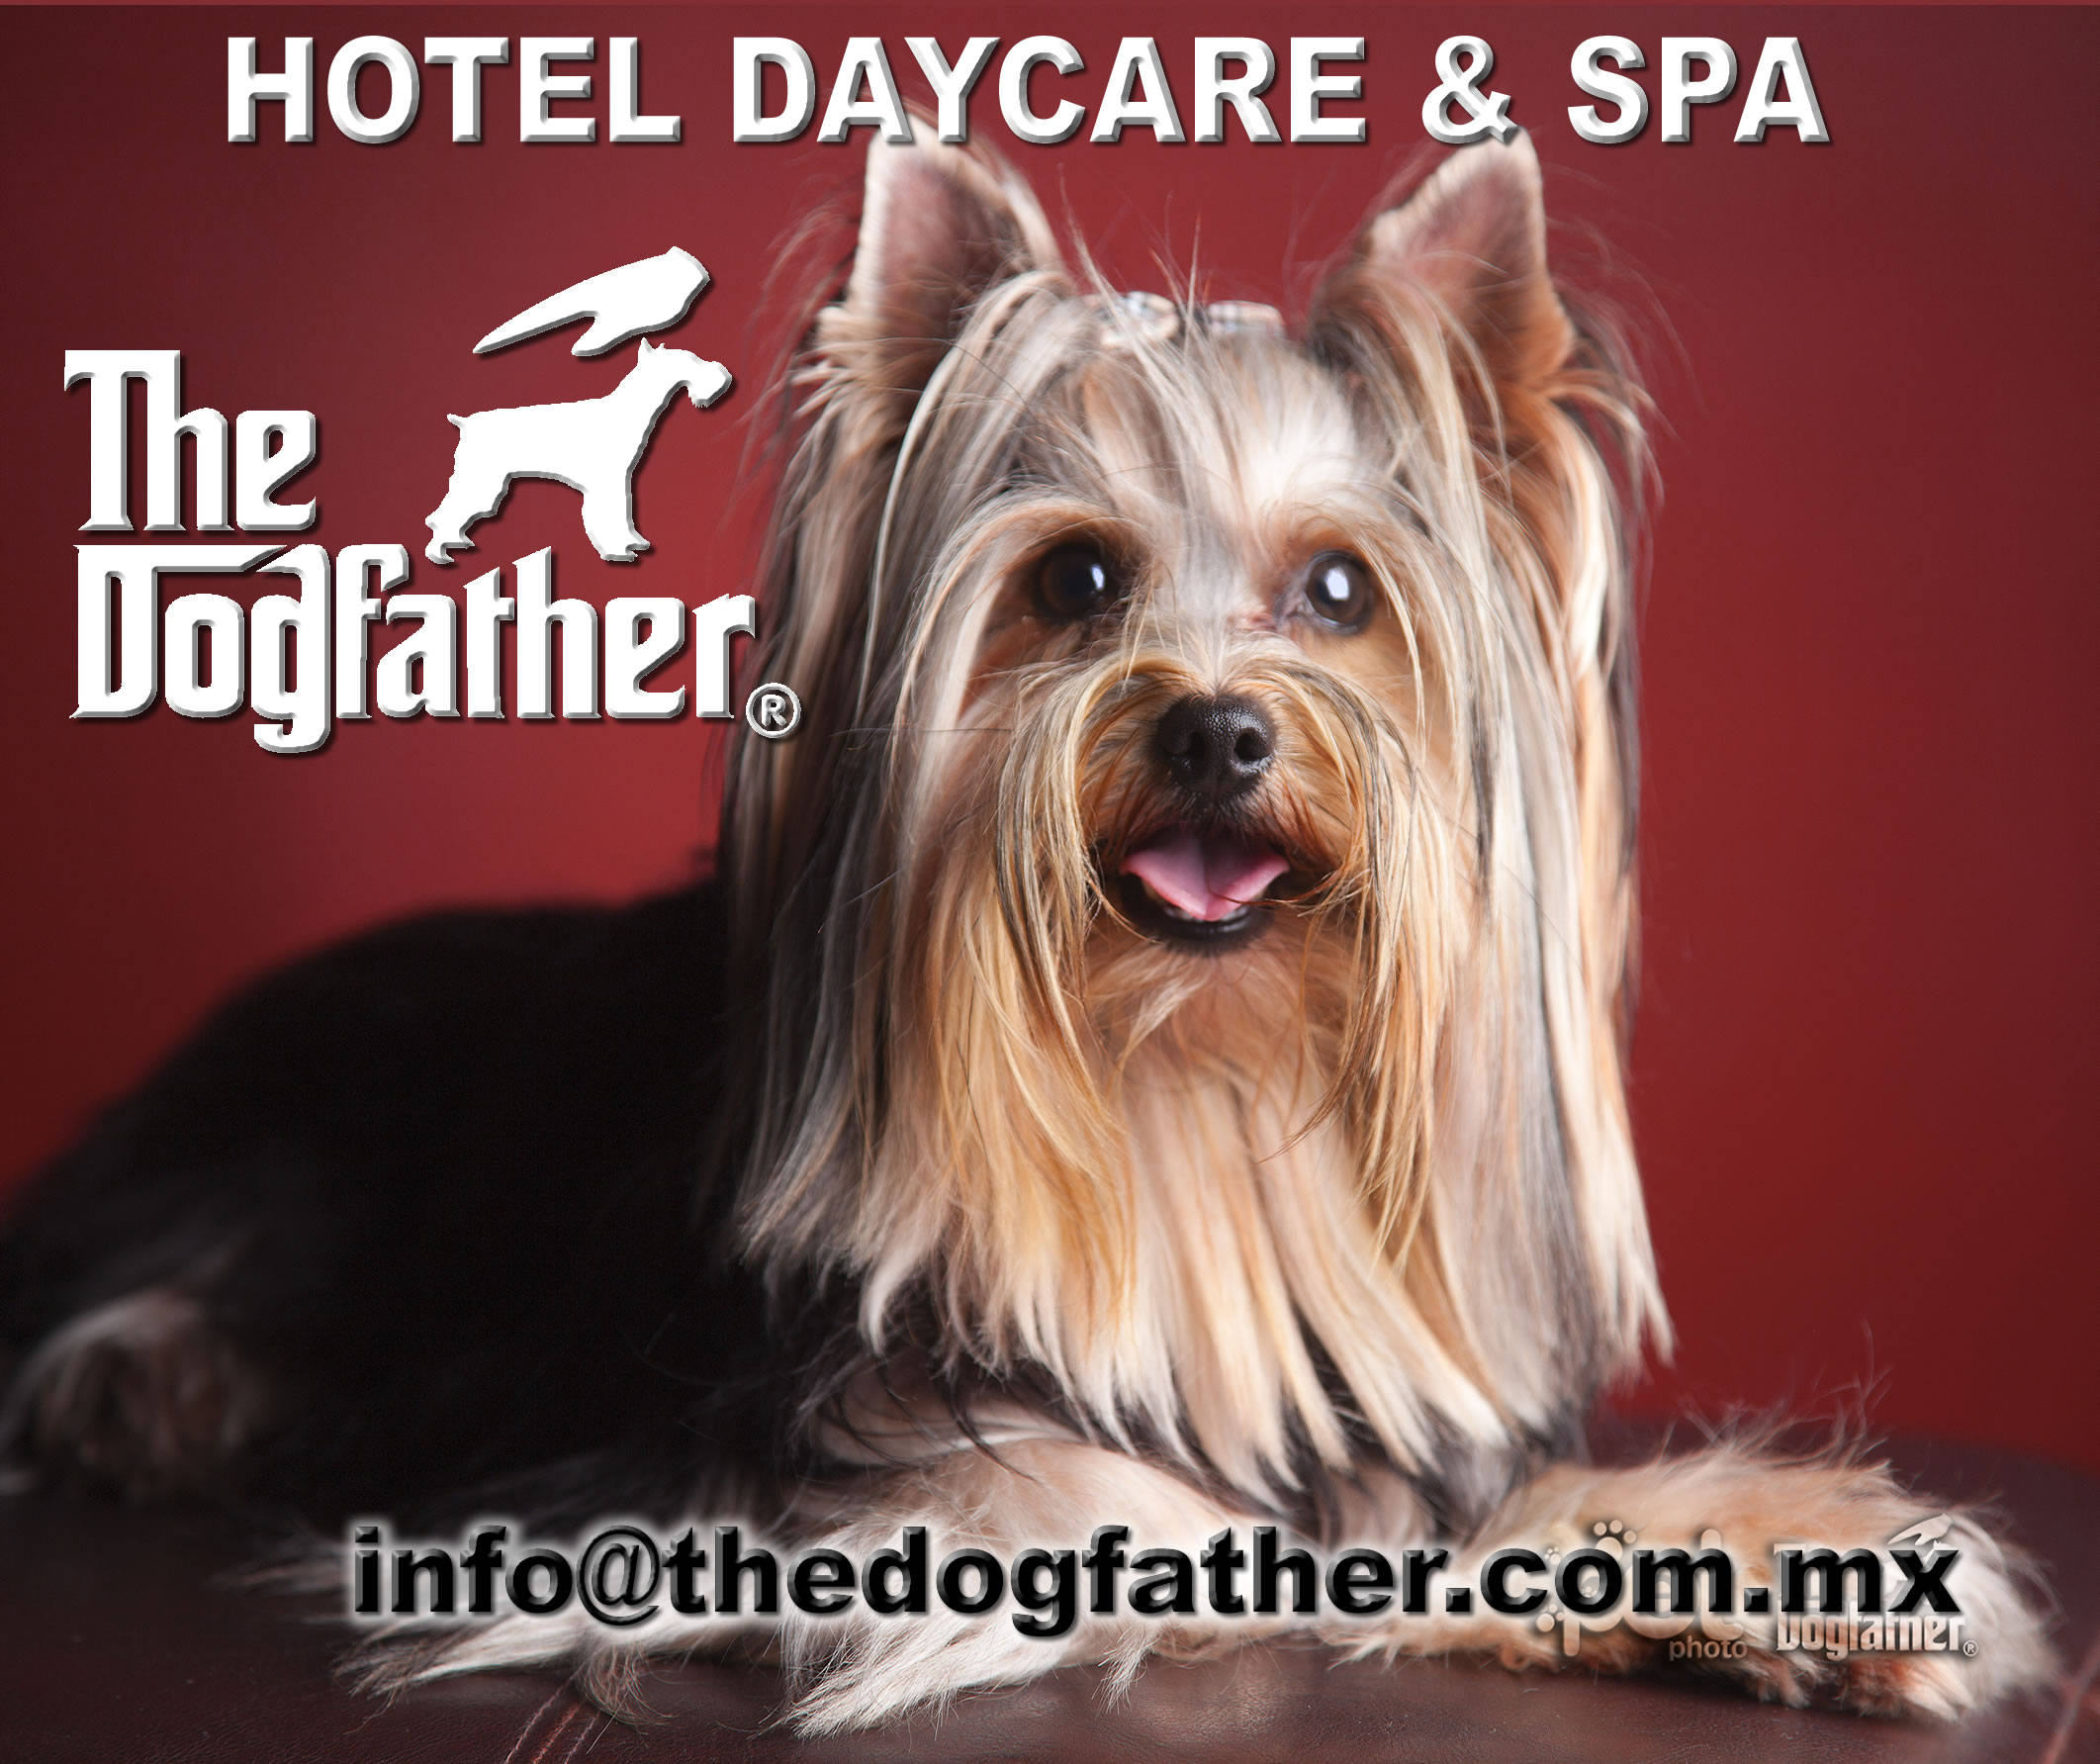 Pet Friendly The Dogfather - Tijuana